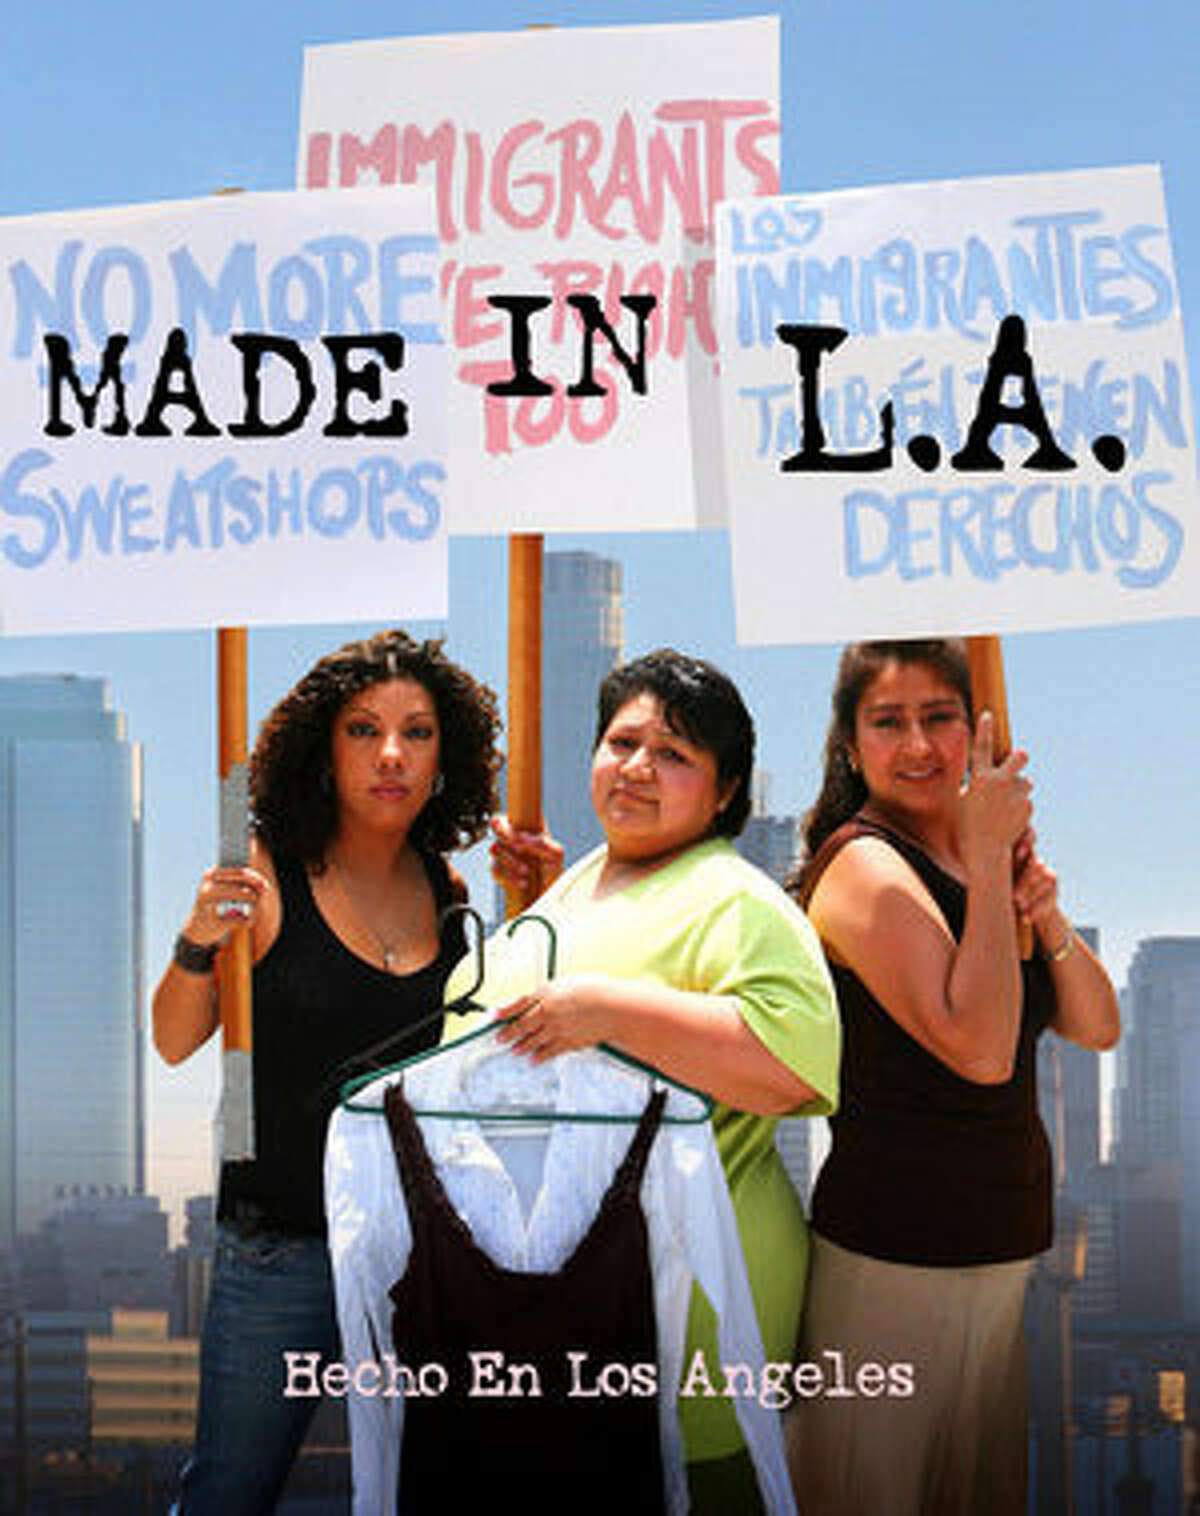 The documentary ?Made in L.A.' will screen at 6:30 p.m. Friday, March 26, during the CineMujer Film Series. The film is about three Latina sweatshop workers fighting for better wages and working conditions.